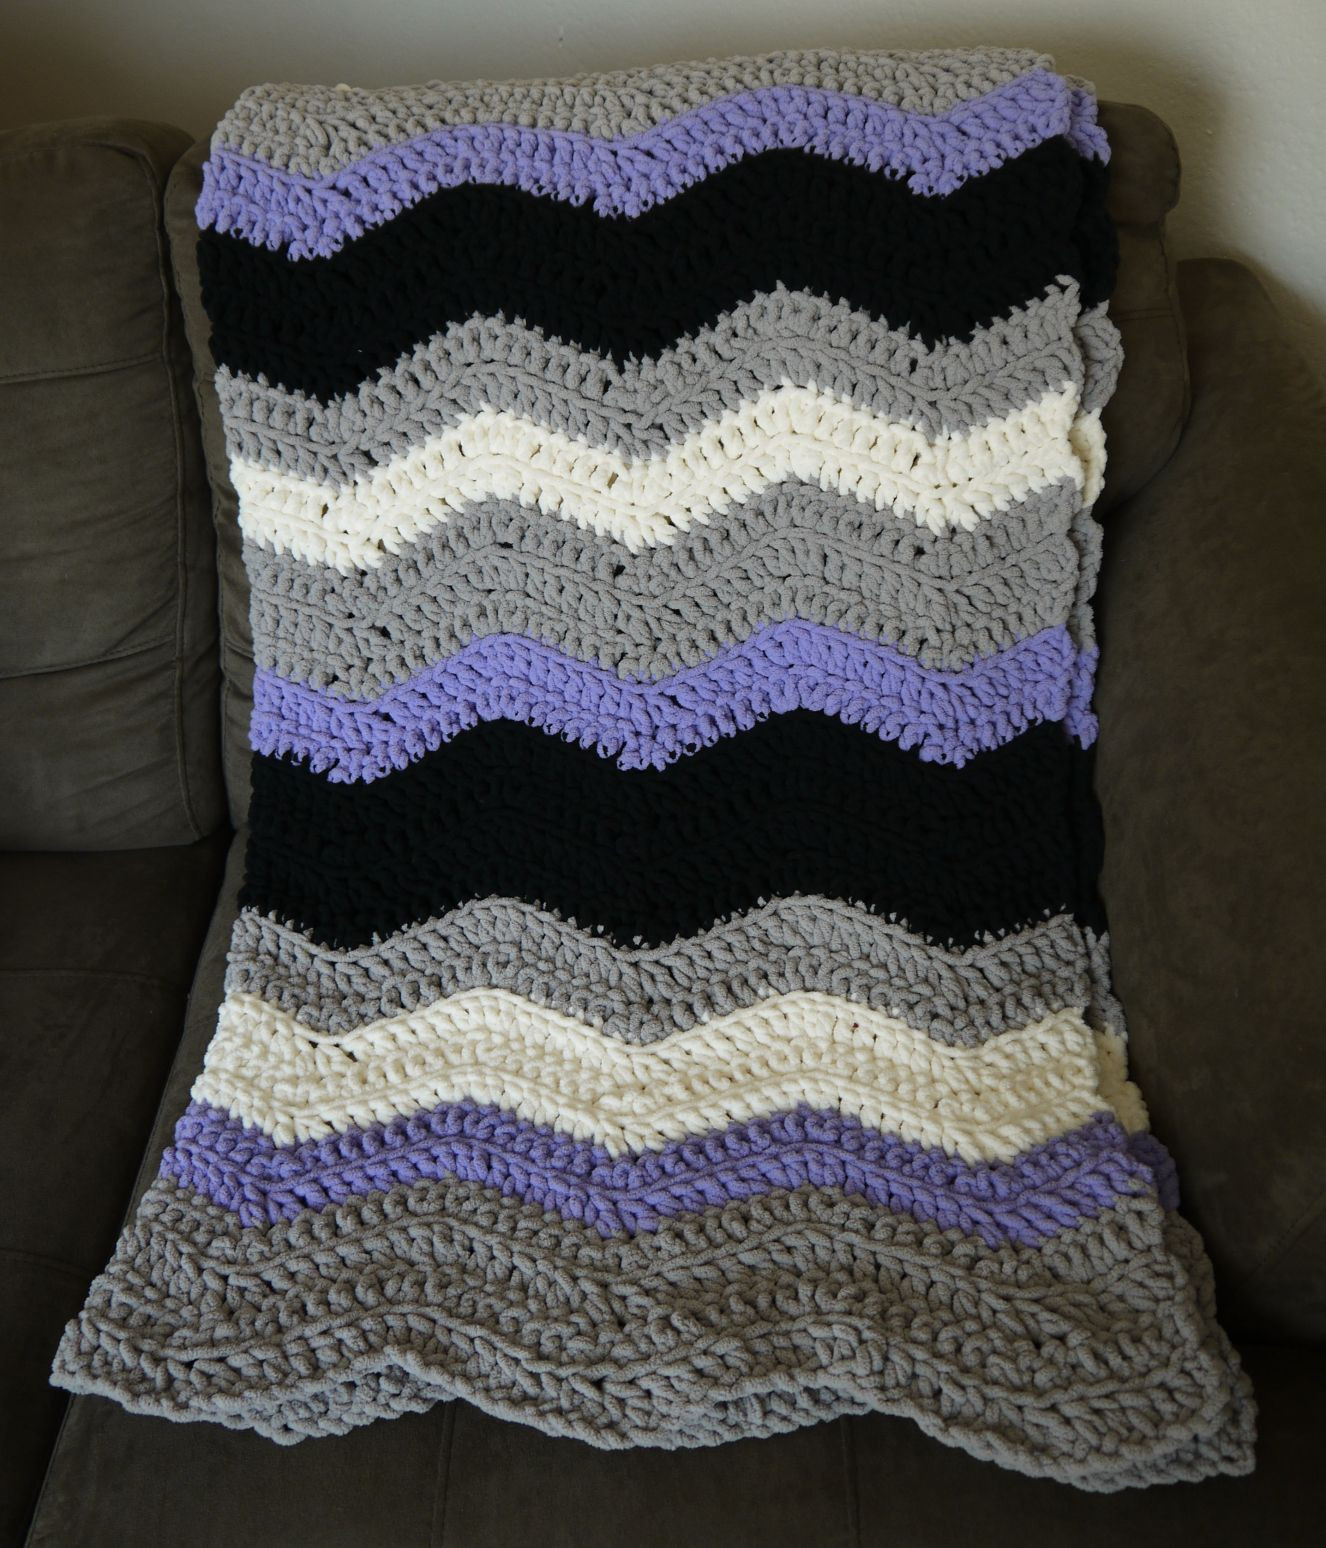 Bernat Blanket Yarn Patterns New Chevron Blanket Crochet Pattern with Bernat Blanket Yarn Of New 42 Photos Bernat Blanket Yarn Patterns